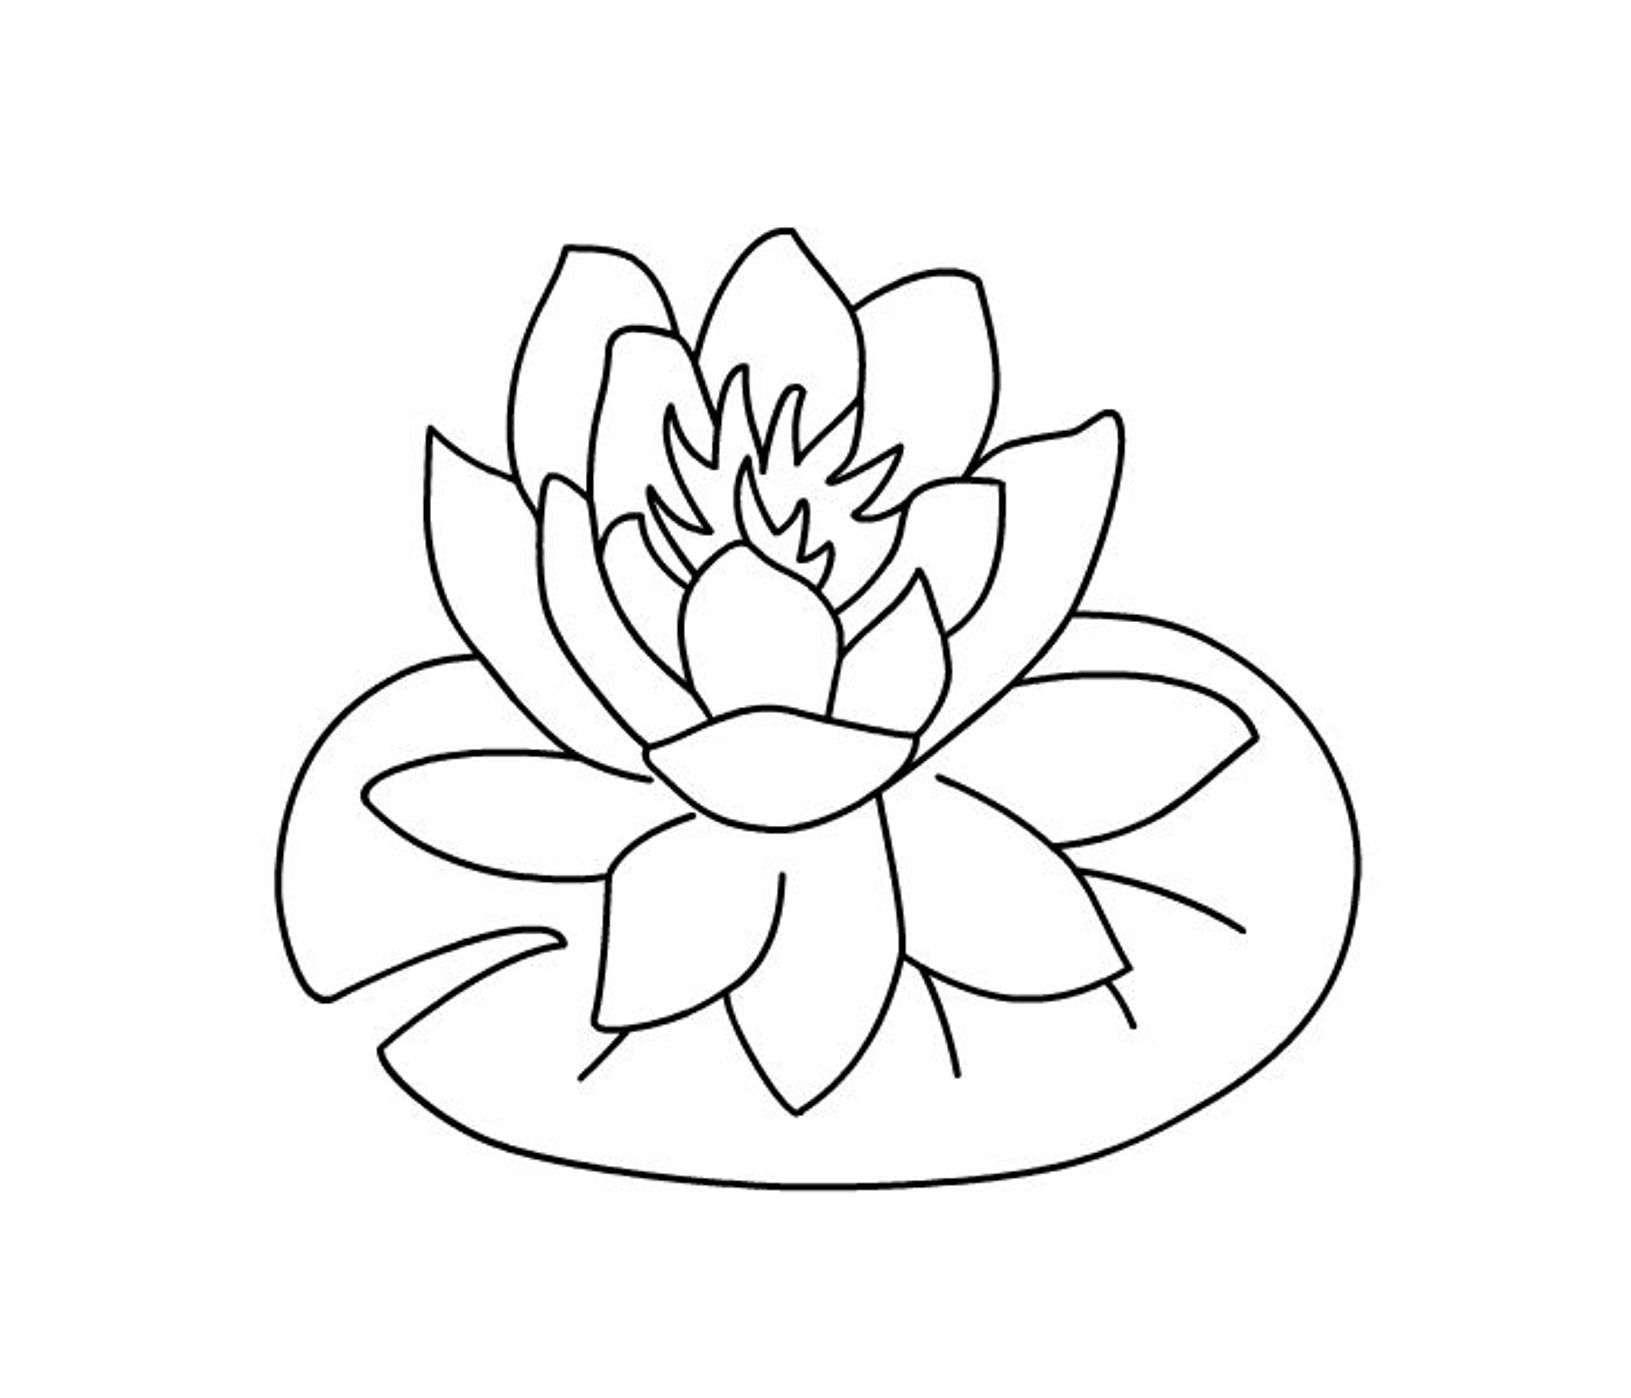 Hibiscus Flowers Coloring Pages | Flower Coloring pages of ...